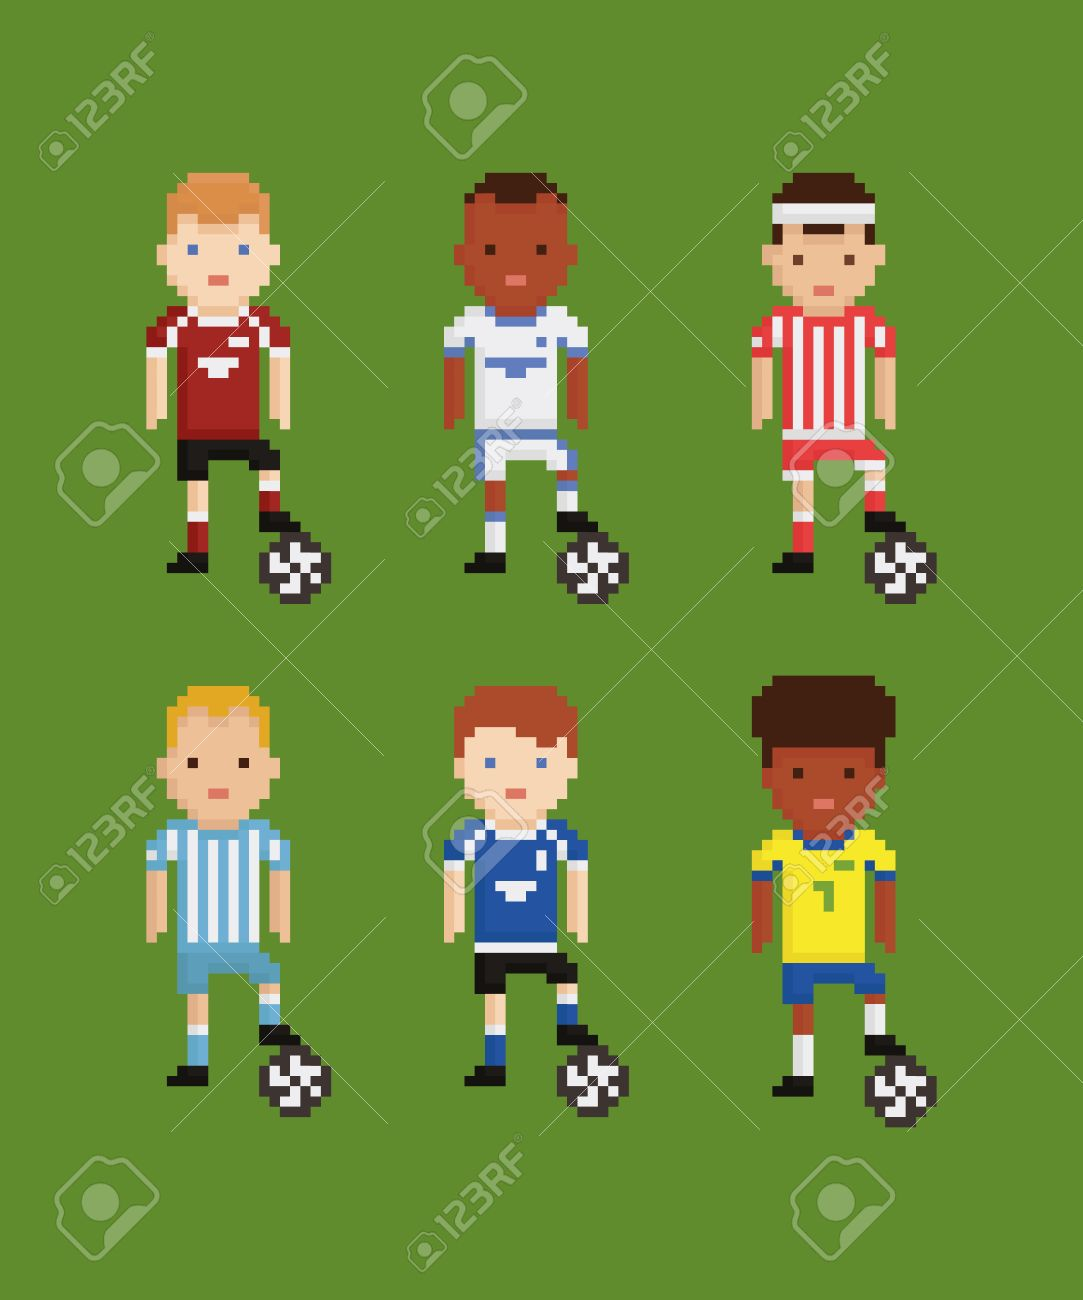 Pixel Art Style Vector Set Football Soccer Players In Different